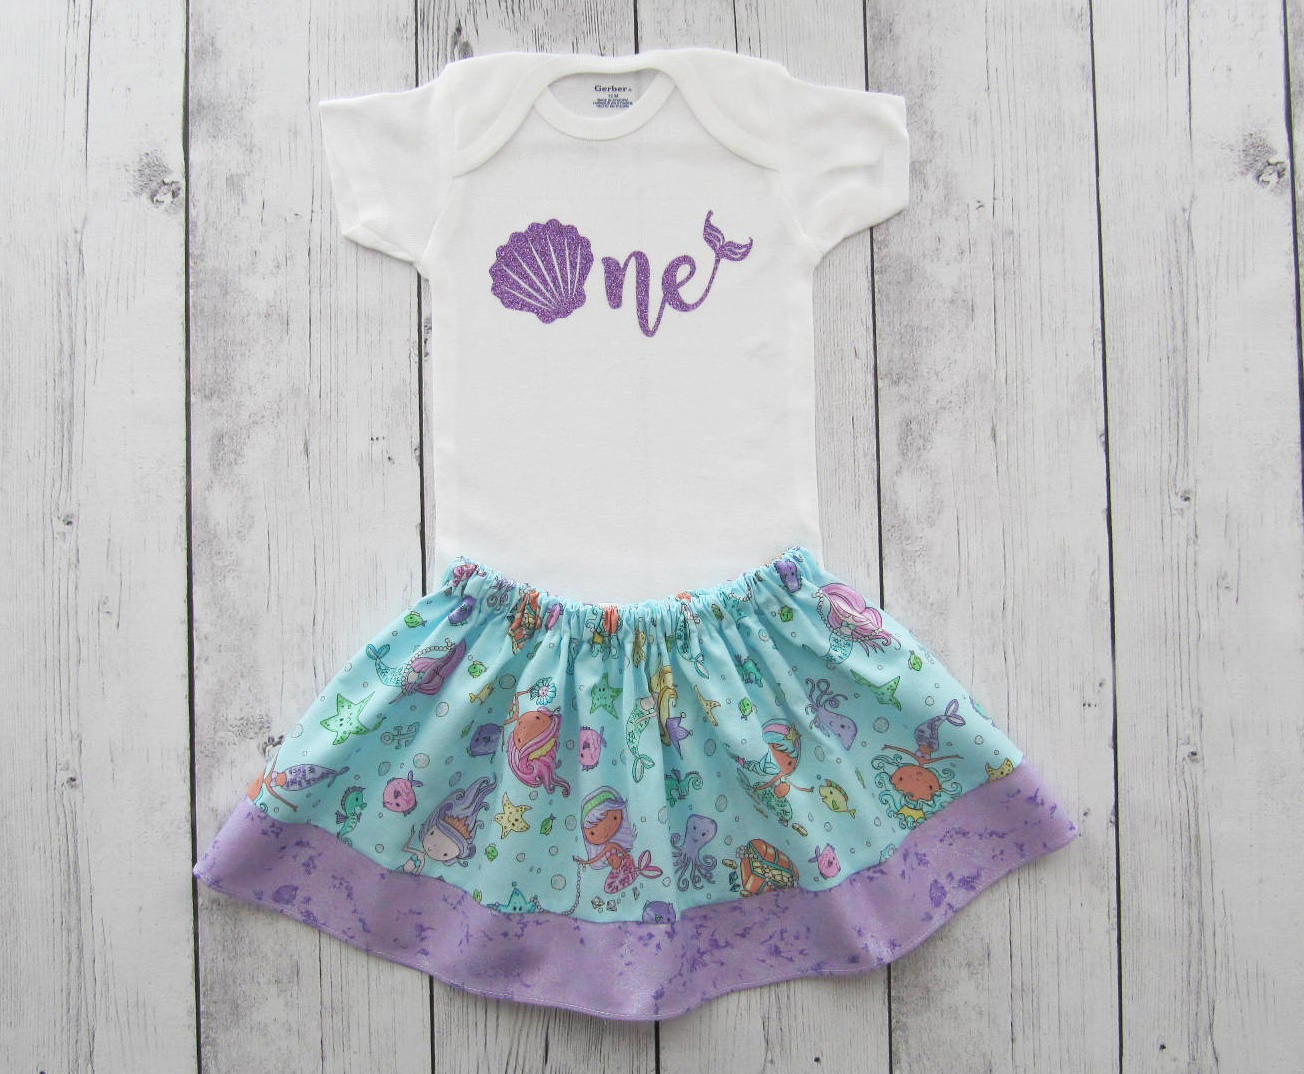 Mermaid First Birthday Outfit in purple aqua mermaid print -under the sea,girl birthday outfit, shell one, mermaid birthday